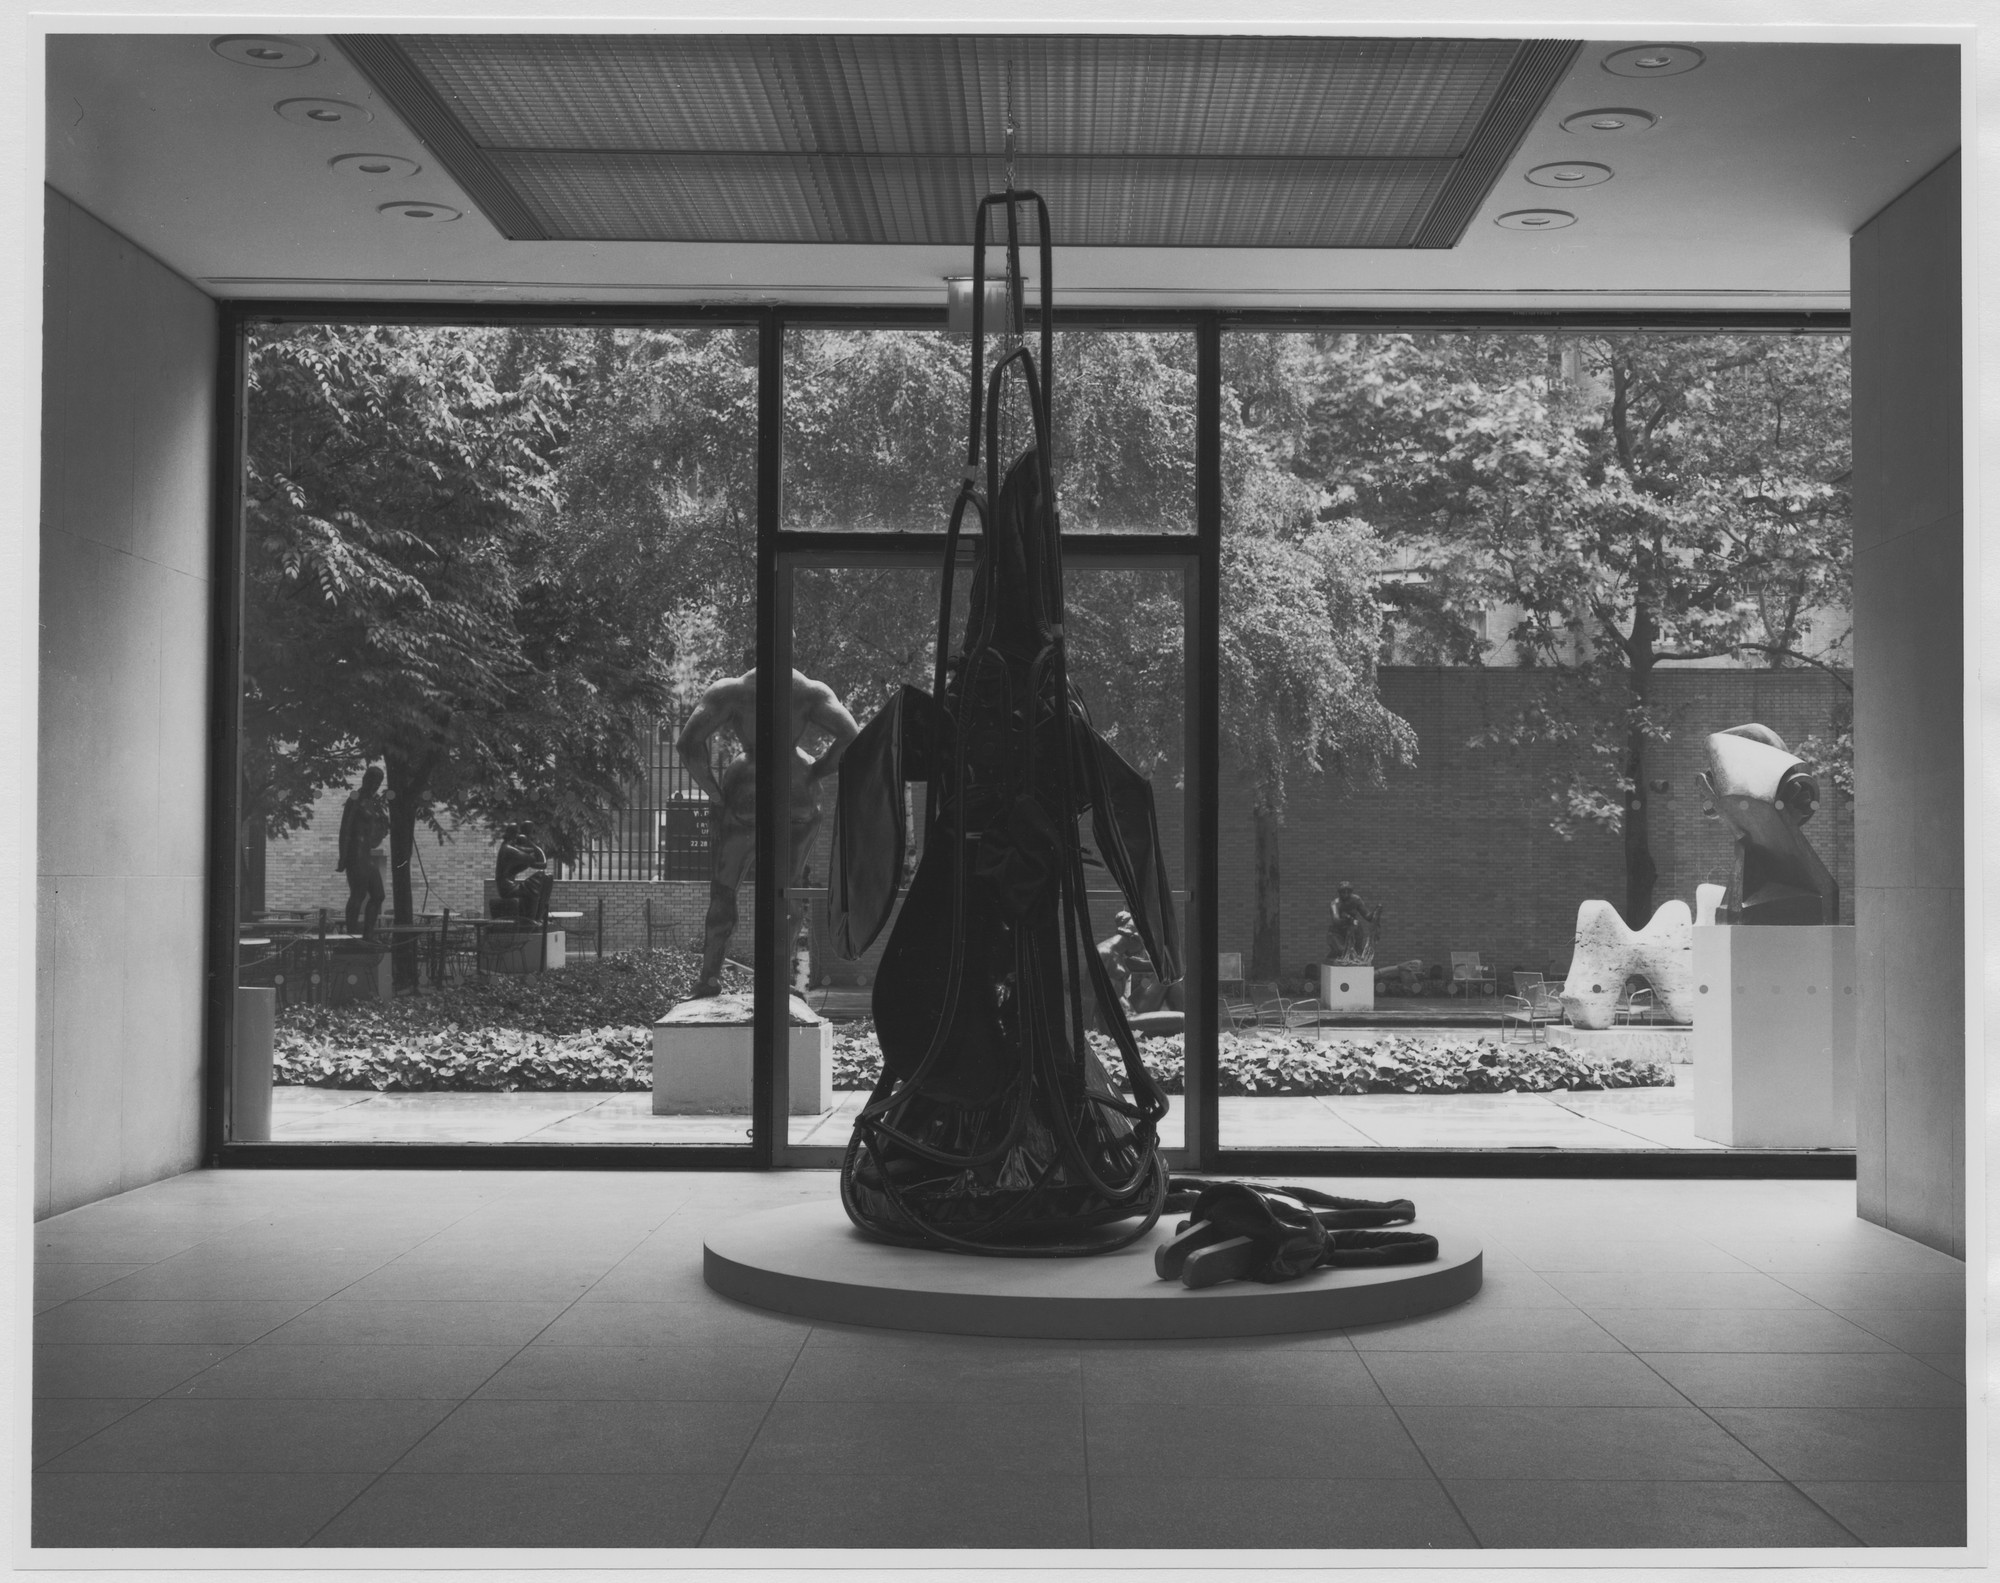 "Installation view of the exhibition, ""Contemporary Sculpture from Collection"" May 18, 1979–August 7, 1979. Photographic Archive. The Museum of Modern Art Archives, New York. IN1262.1. Photograph by Katherine Keller."